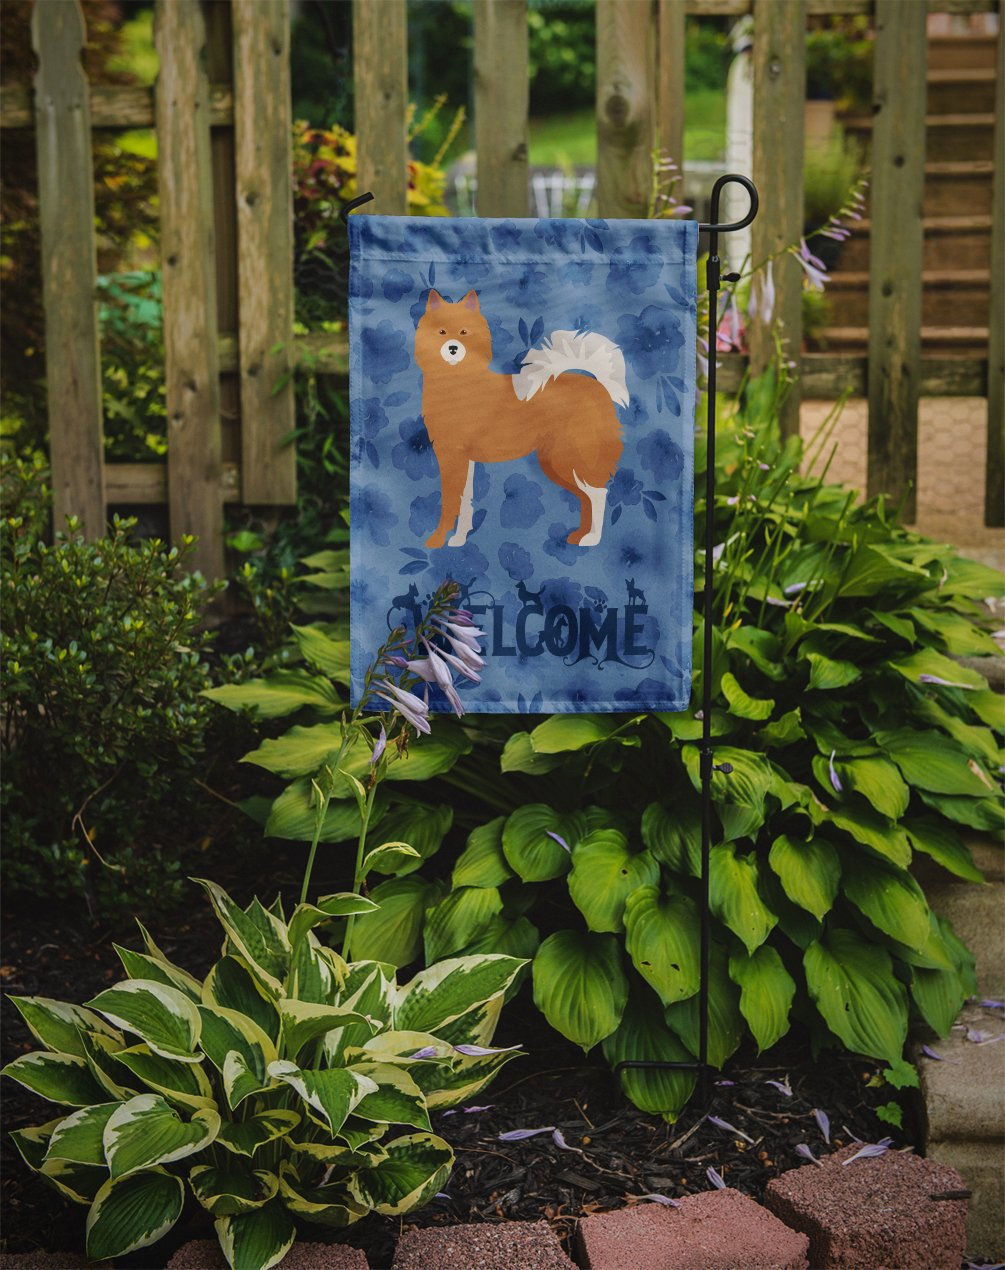 Elo Dog #1 Welcome Flag Garden Size CK5984GF by Caroline's Treasures